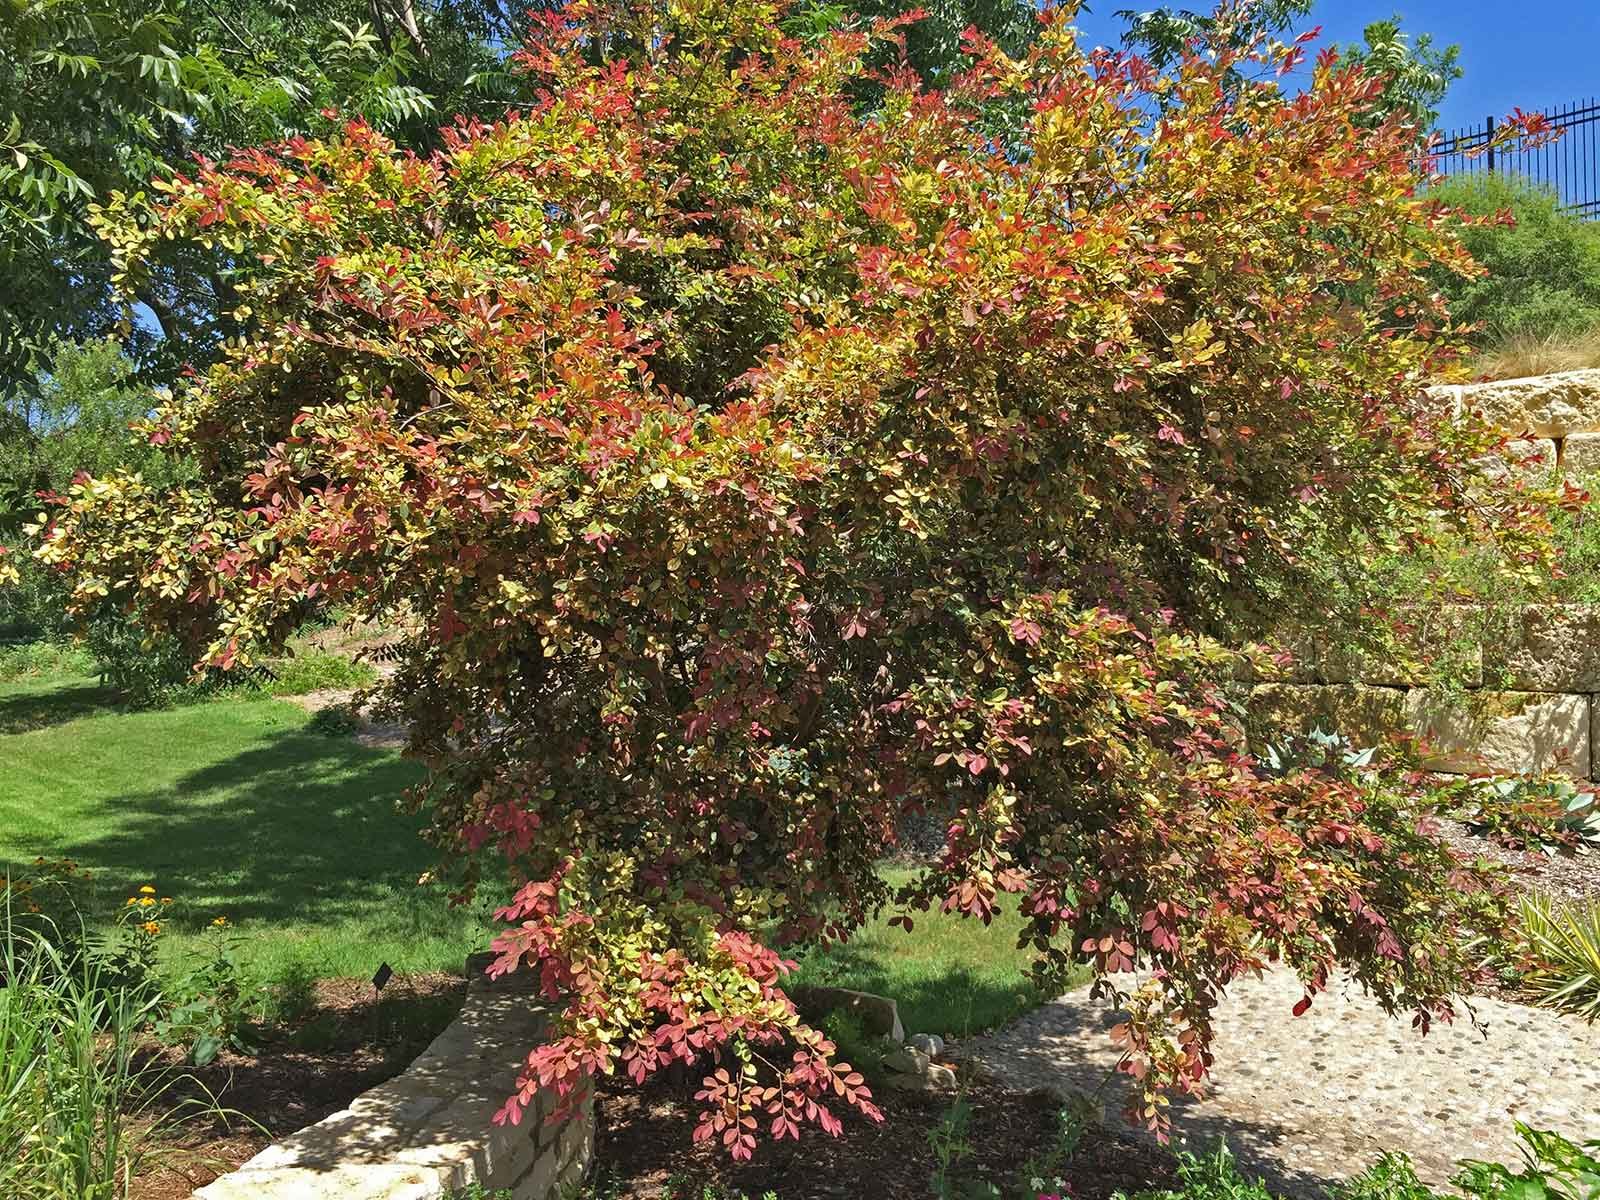 The reason some don't like planting Loropetalum is that certain forms, require maintenance and pruning. Here a Loropetalum left to grow to into a large, natural form.